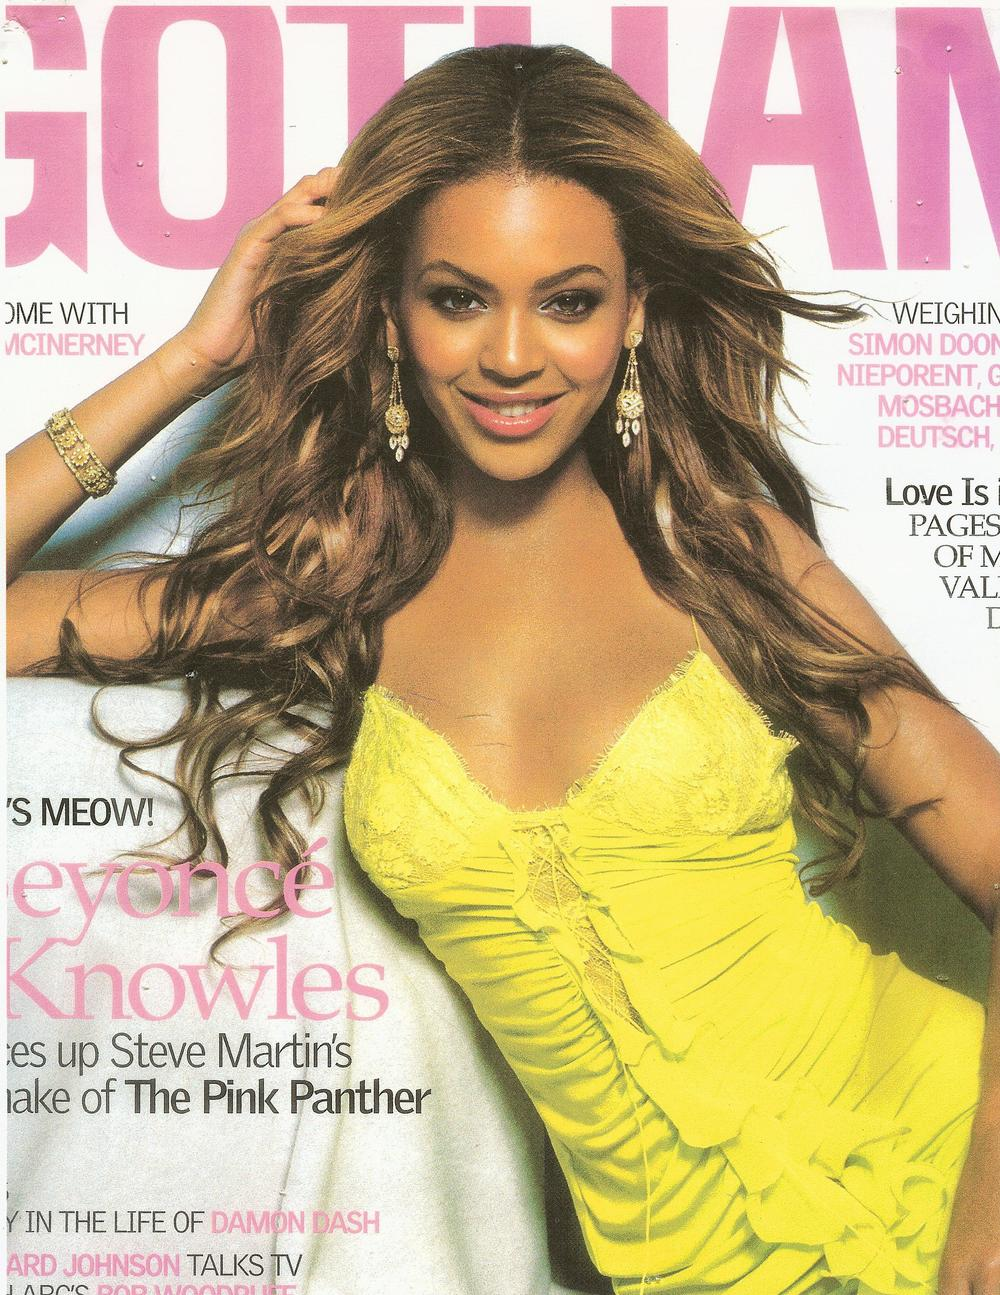 Beyonce on the cover of Gotham Magazine modeling our 18K Couture earrings and bangles.